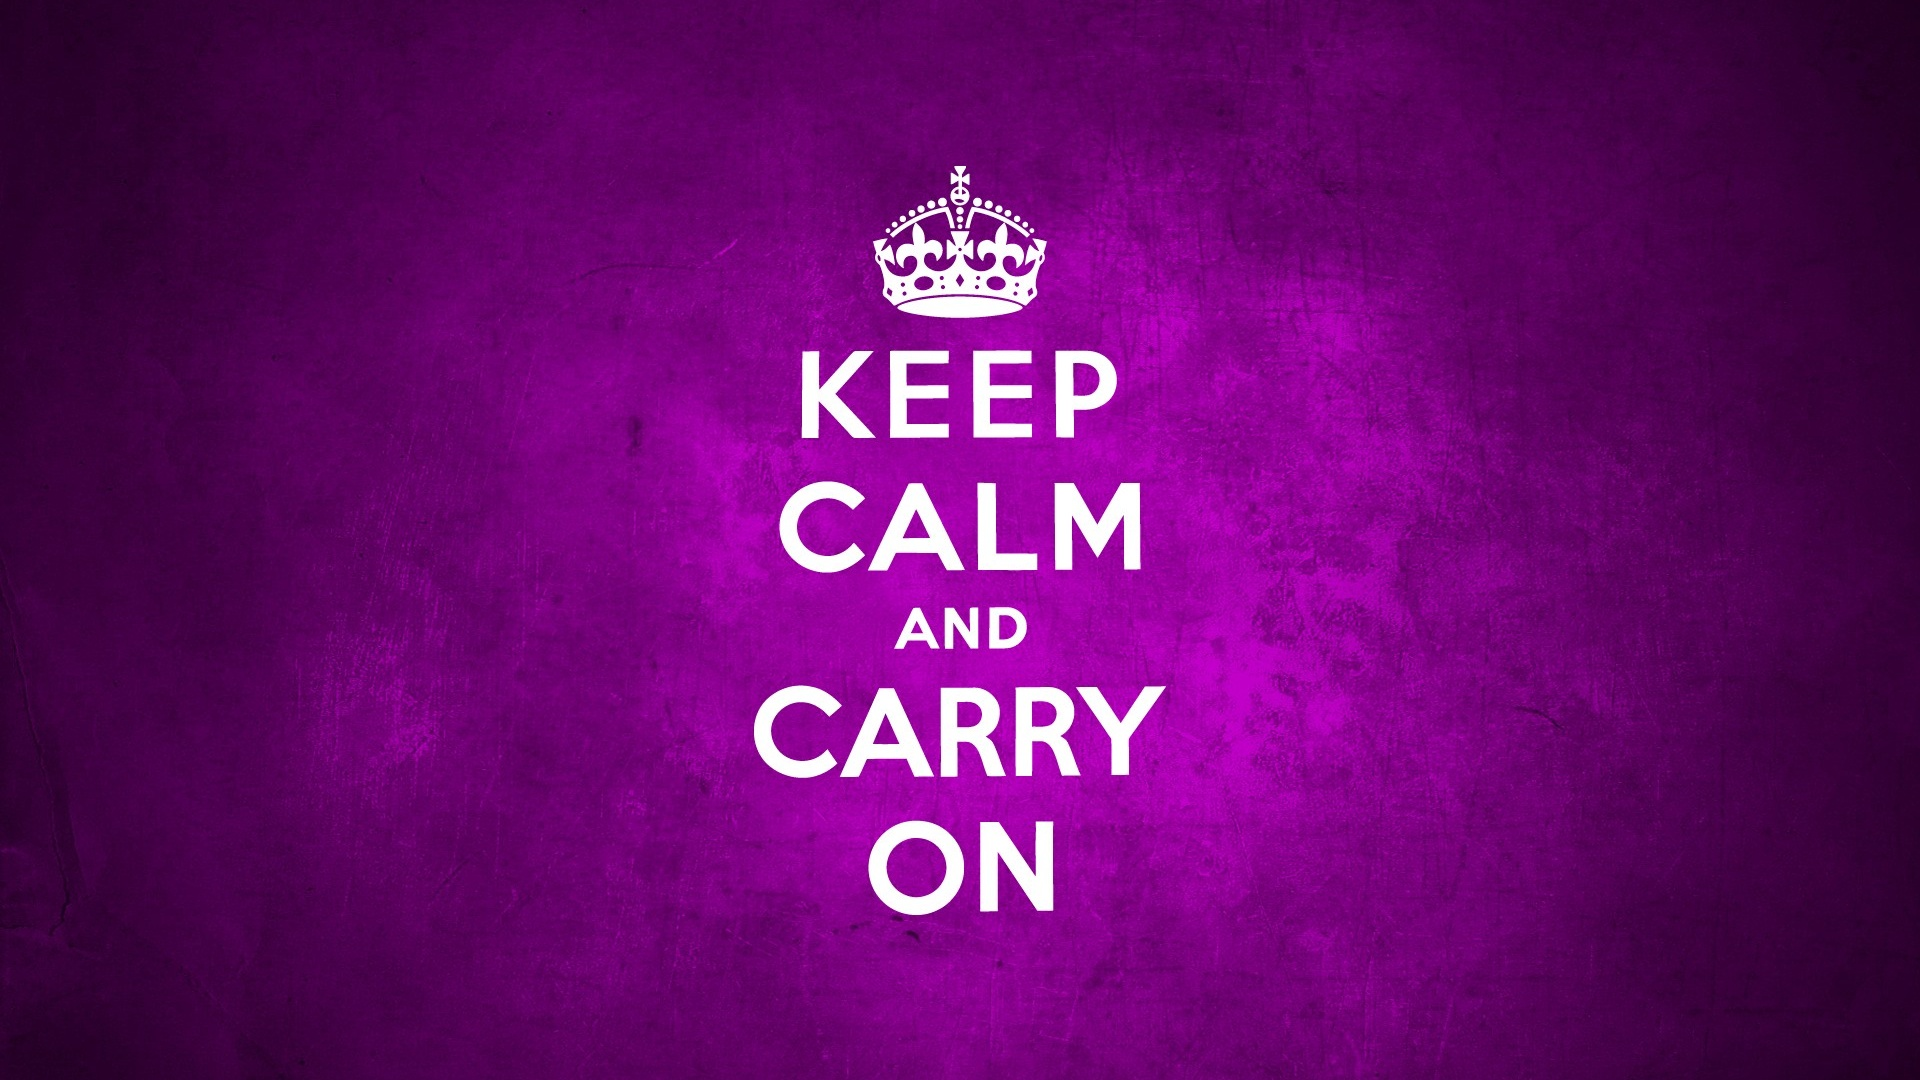 1920x1080 Keep Calm And Carry On Purple Desktop PC Mac Wallpaper